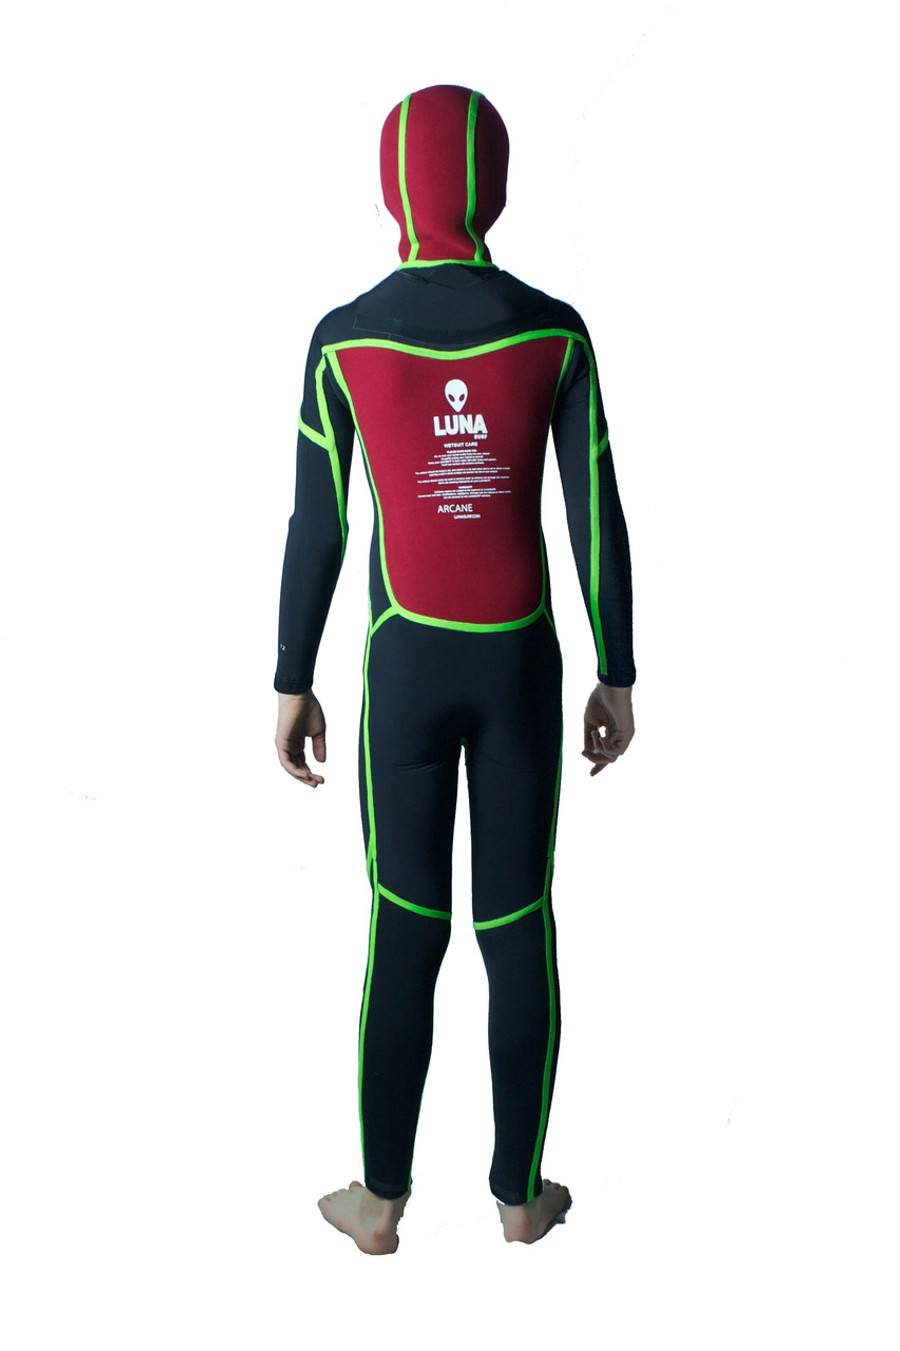 Inside out - Childrens Japanese Yamamoto wetsuit - Thermal chest, back, hood.